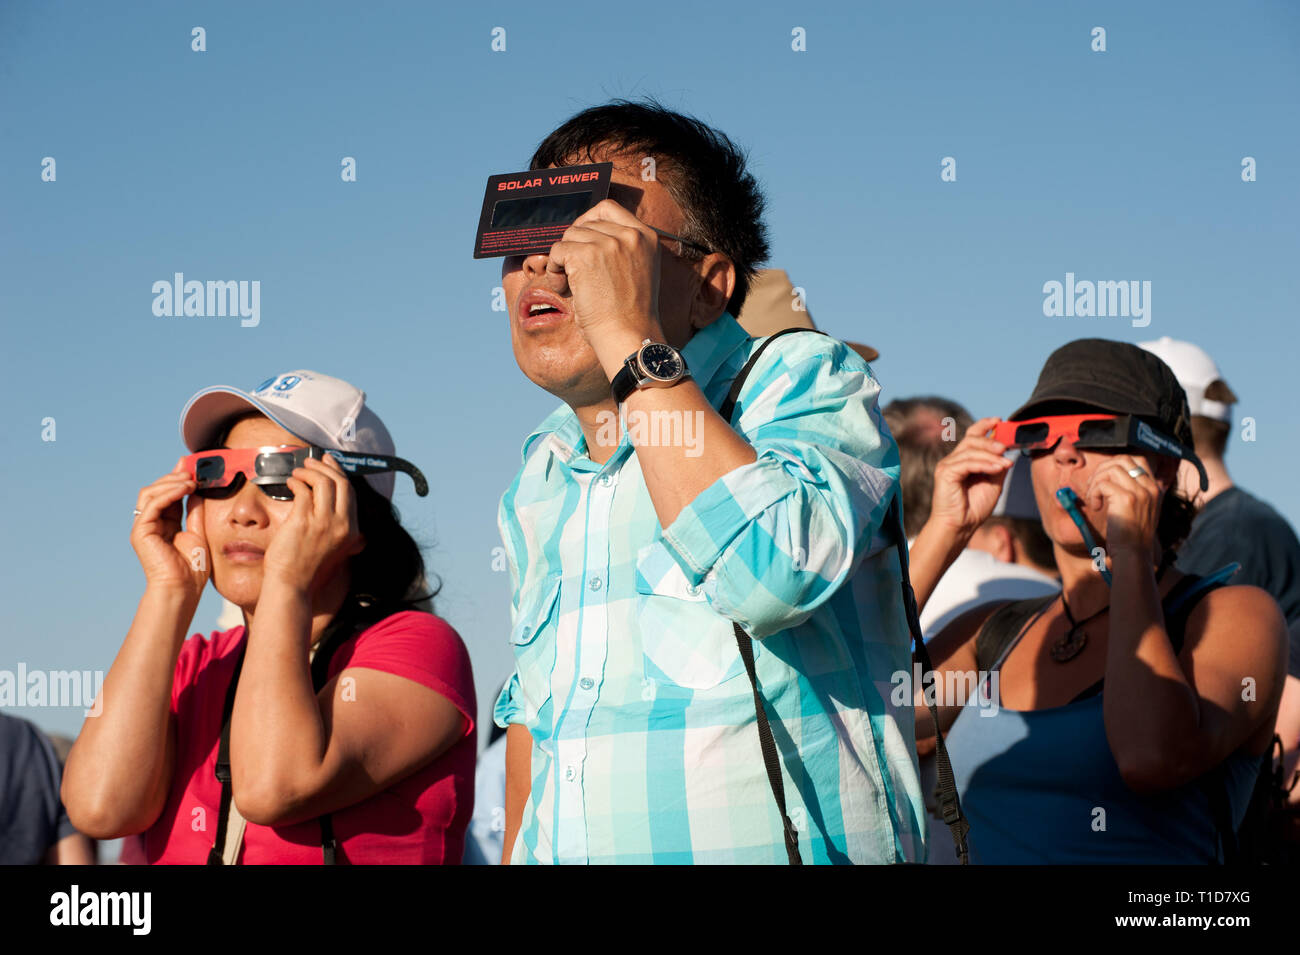 Visitors to Arches National Park viewing the 2012 solar eclipse through special glasses - Stock Image